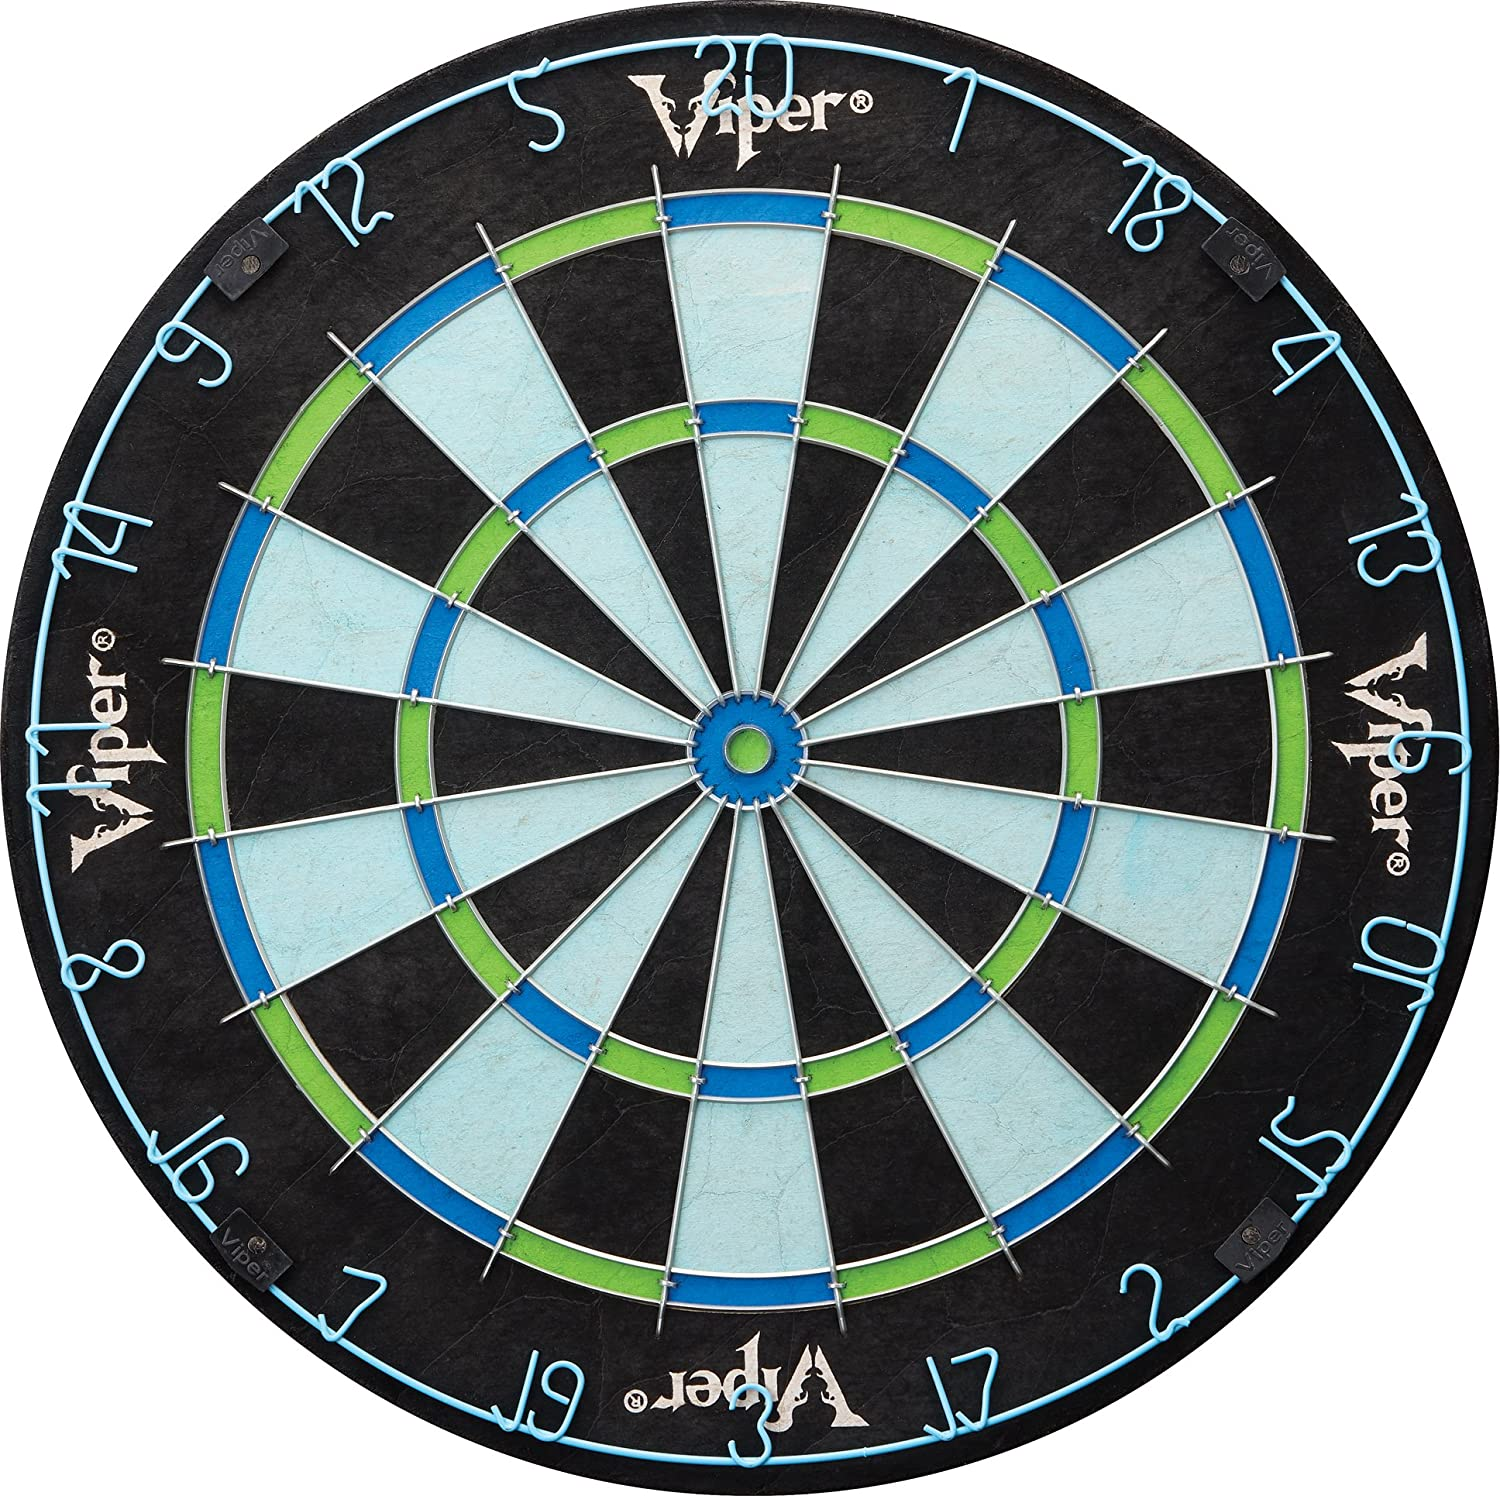 Amazon.com : Viper Chroma Sisal/Bristle Steel Tip Dartboard with ...